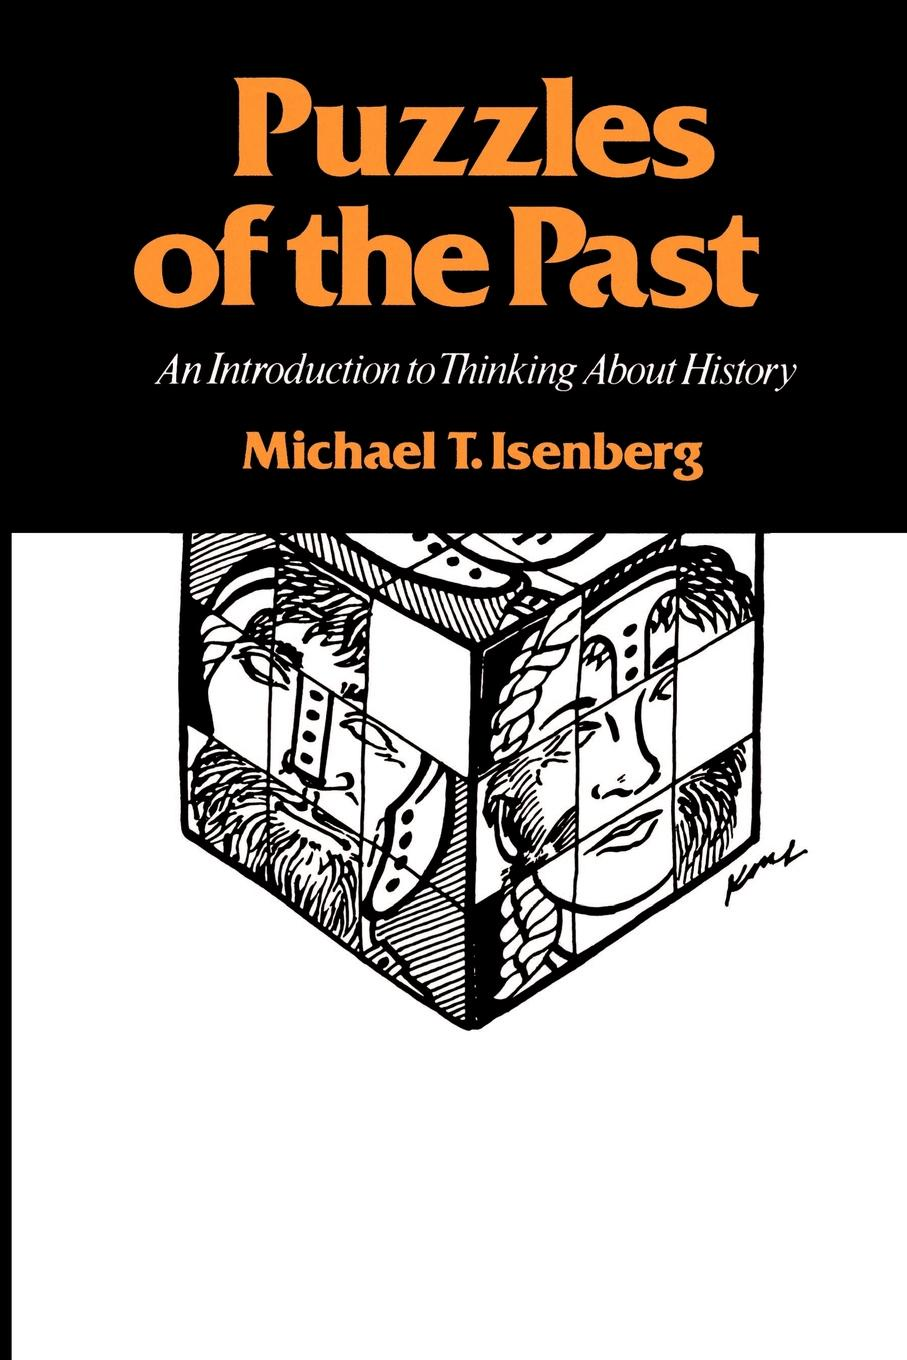 цены на Michael T. Isenberg Puzzles of the Past. An Introduction to Thinking about History  в интернет-магазинах